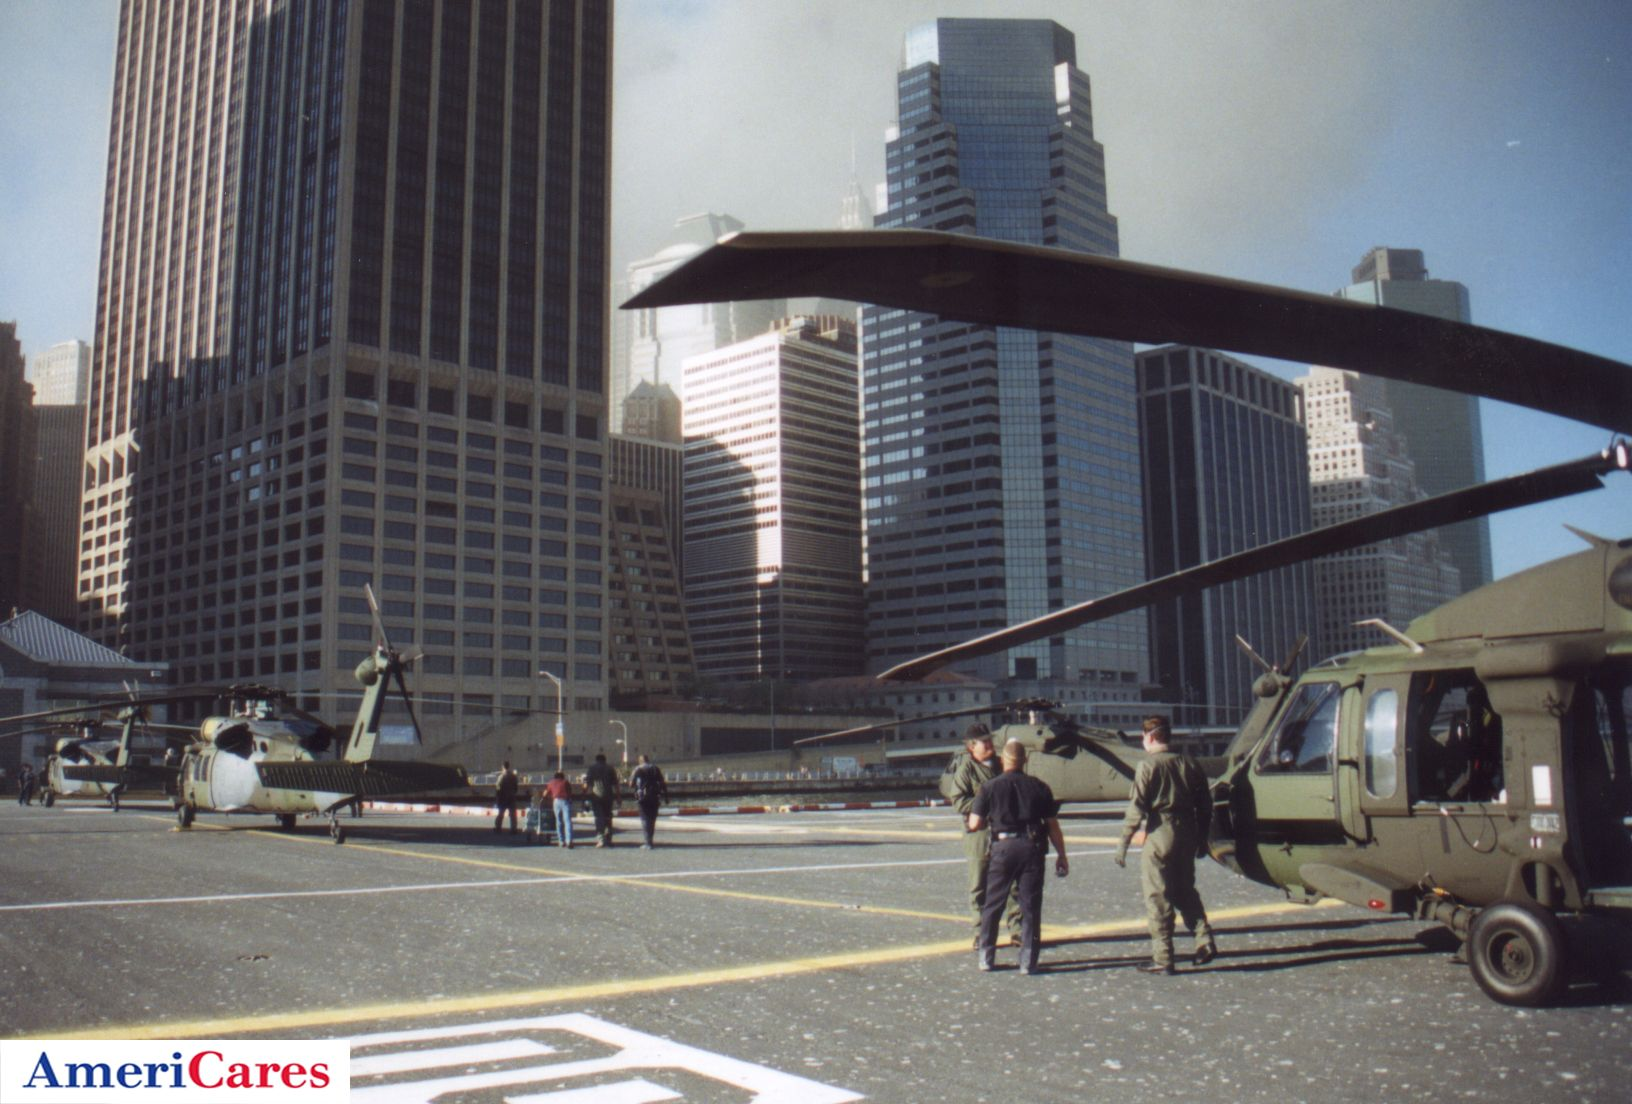 2001: Four hours after the first attack on the World Trade Center, seven helicopters arranged by AmeriCares landed near Ground Zero with emergency supplies and medical teams. #911 #groundzero Photo: Tony Anthony - All Rights Reserved. Join us: www.facebook.com/americares